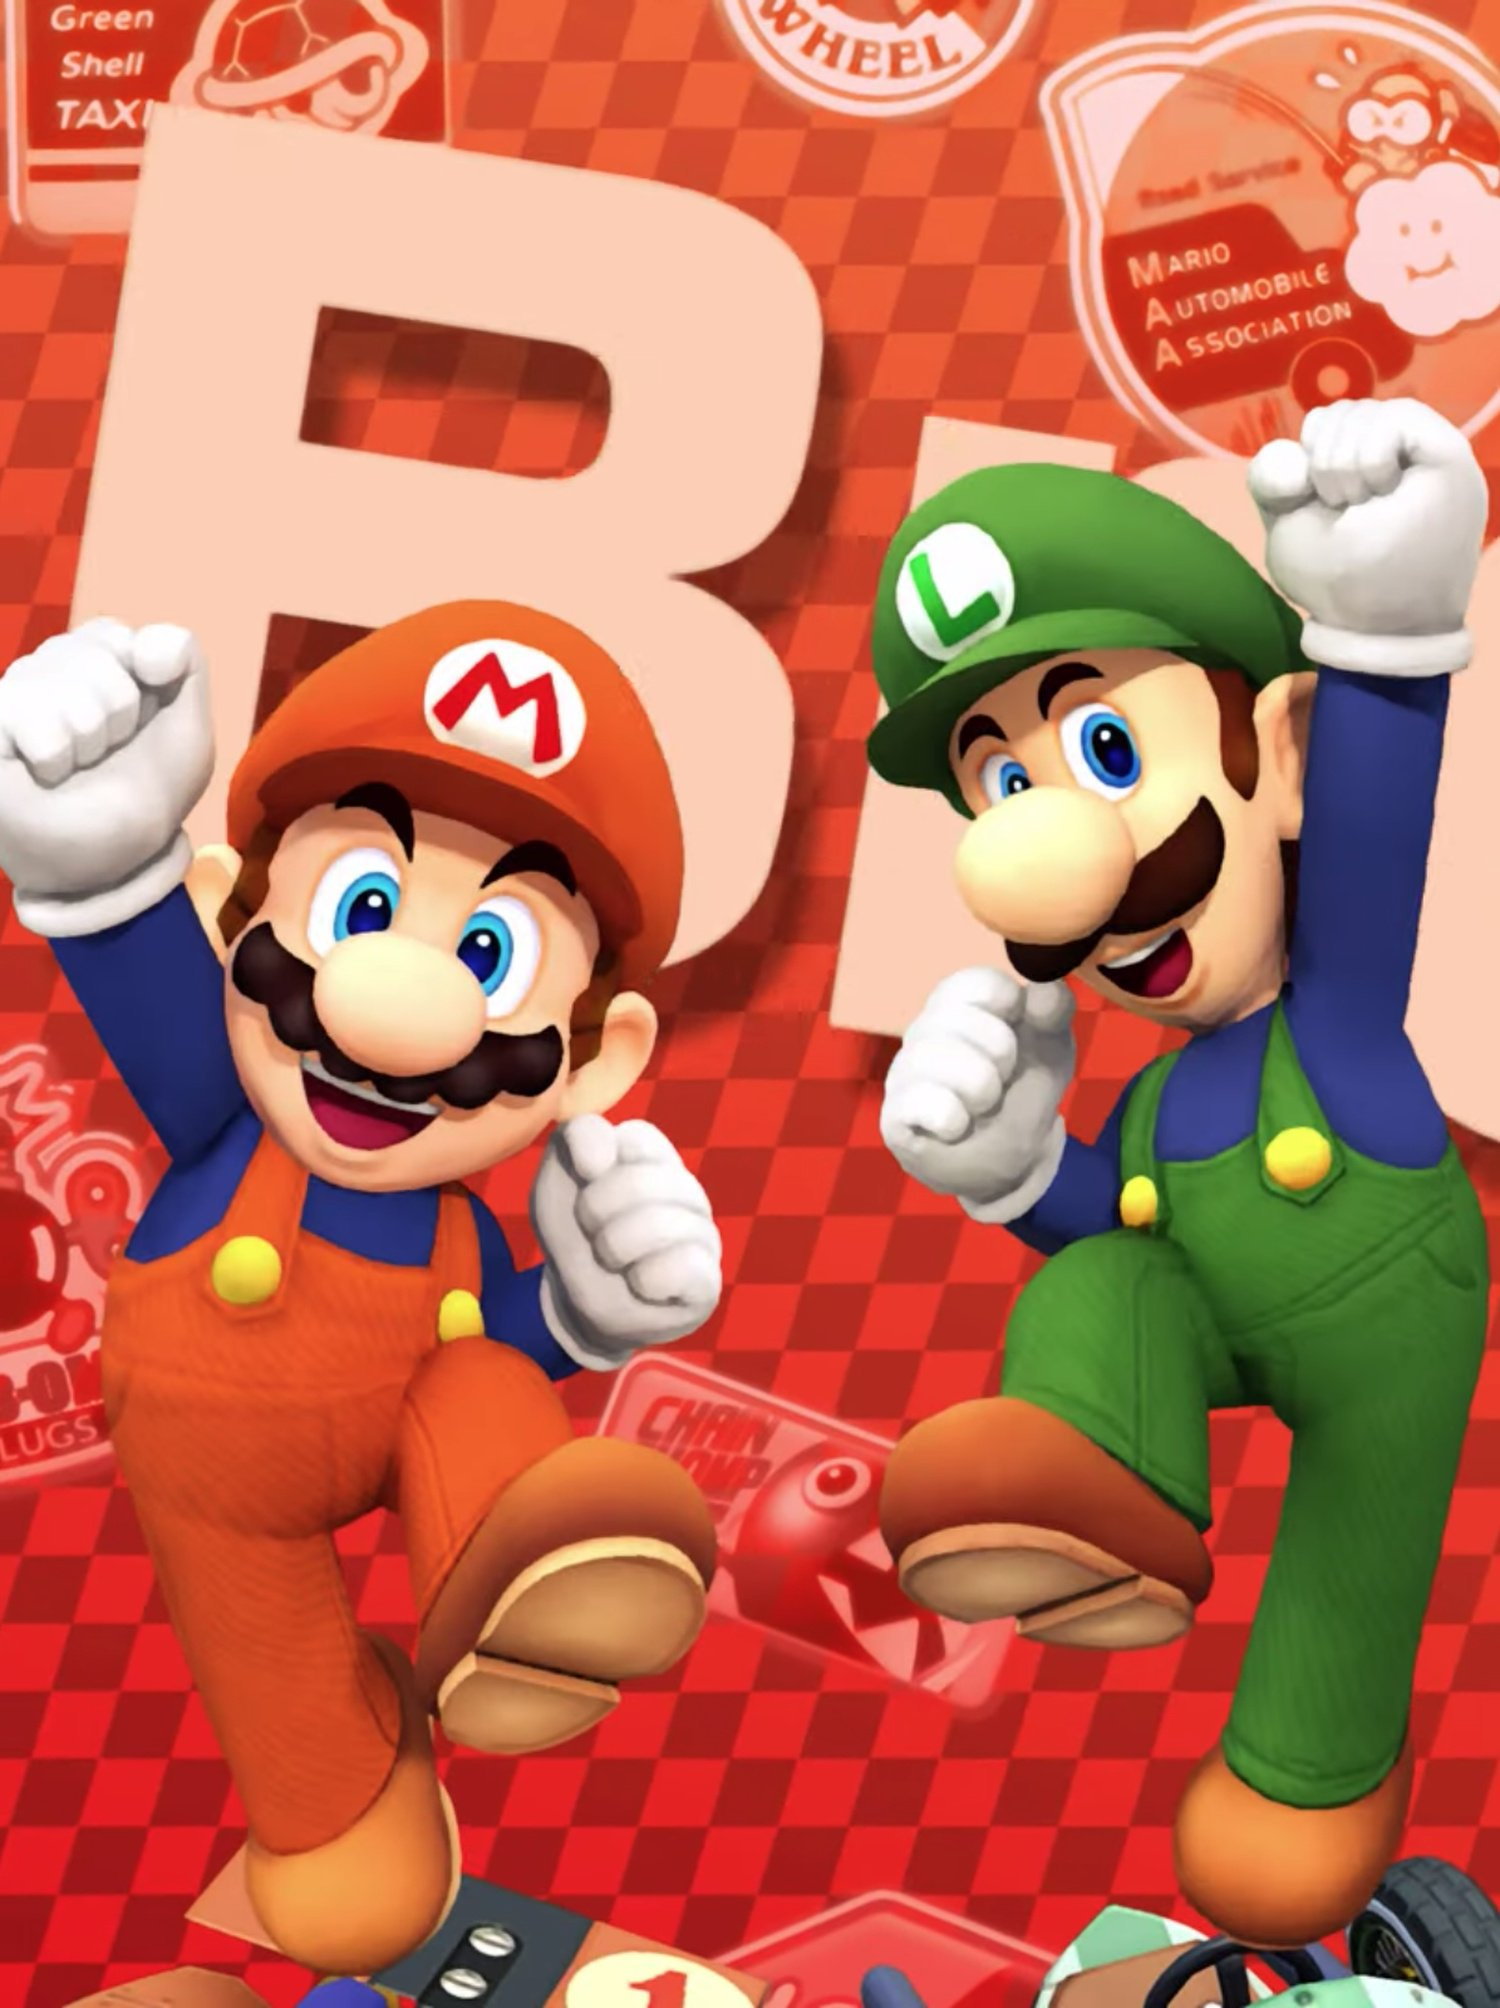 Mario Kart Tour Adds Classic Mario And Luigi And A Remixed Version